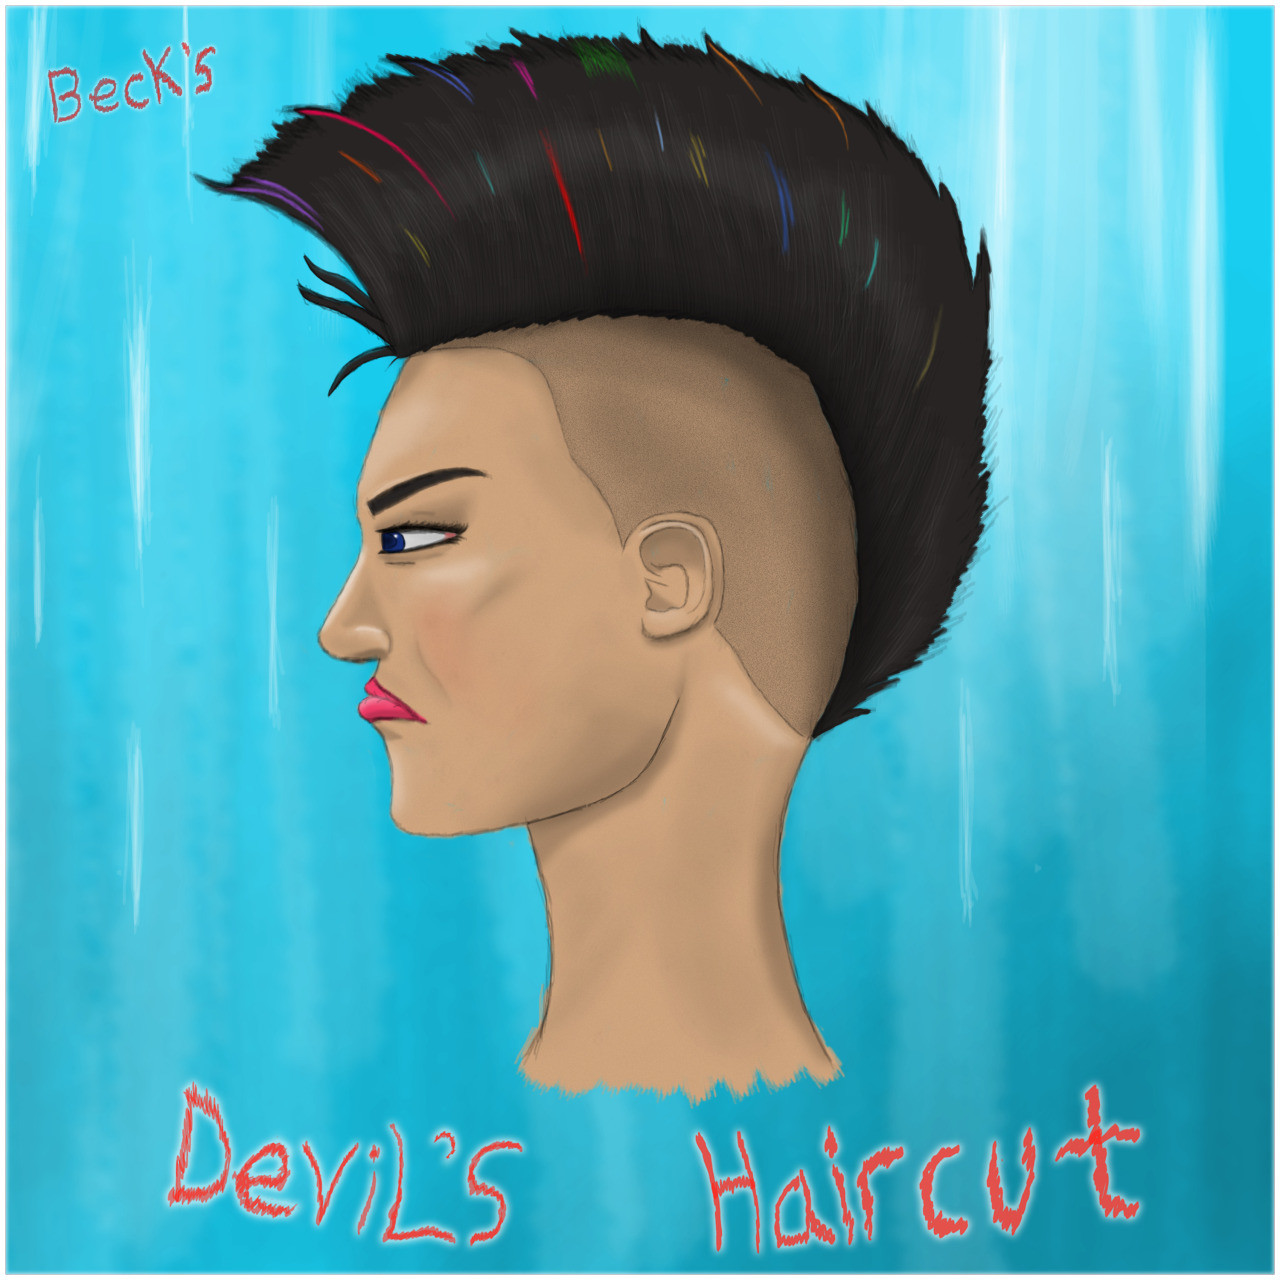 Joseph Lyon Devils Haircut Tribute